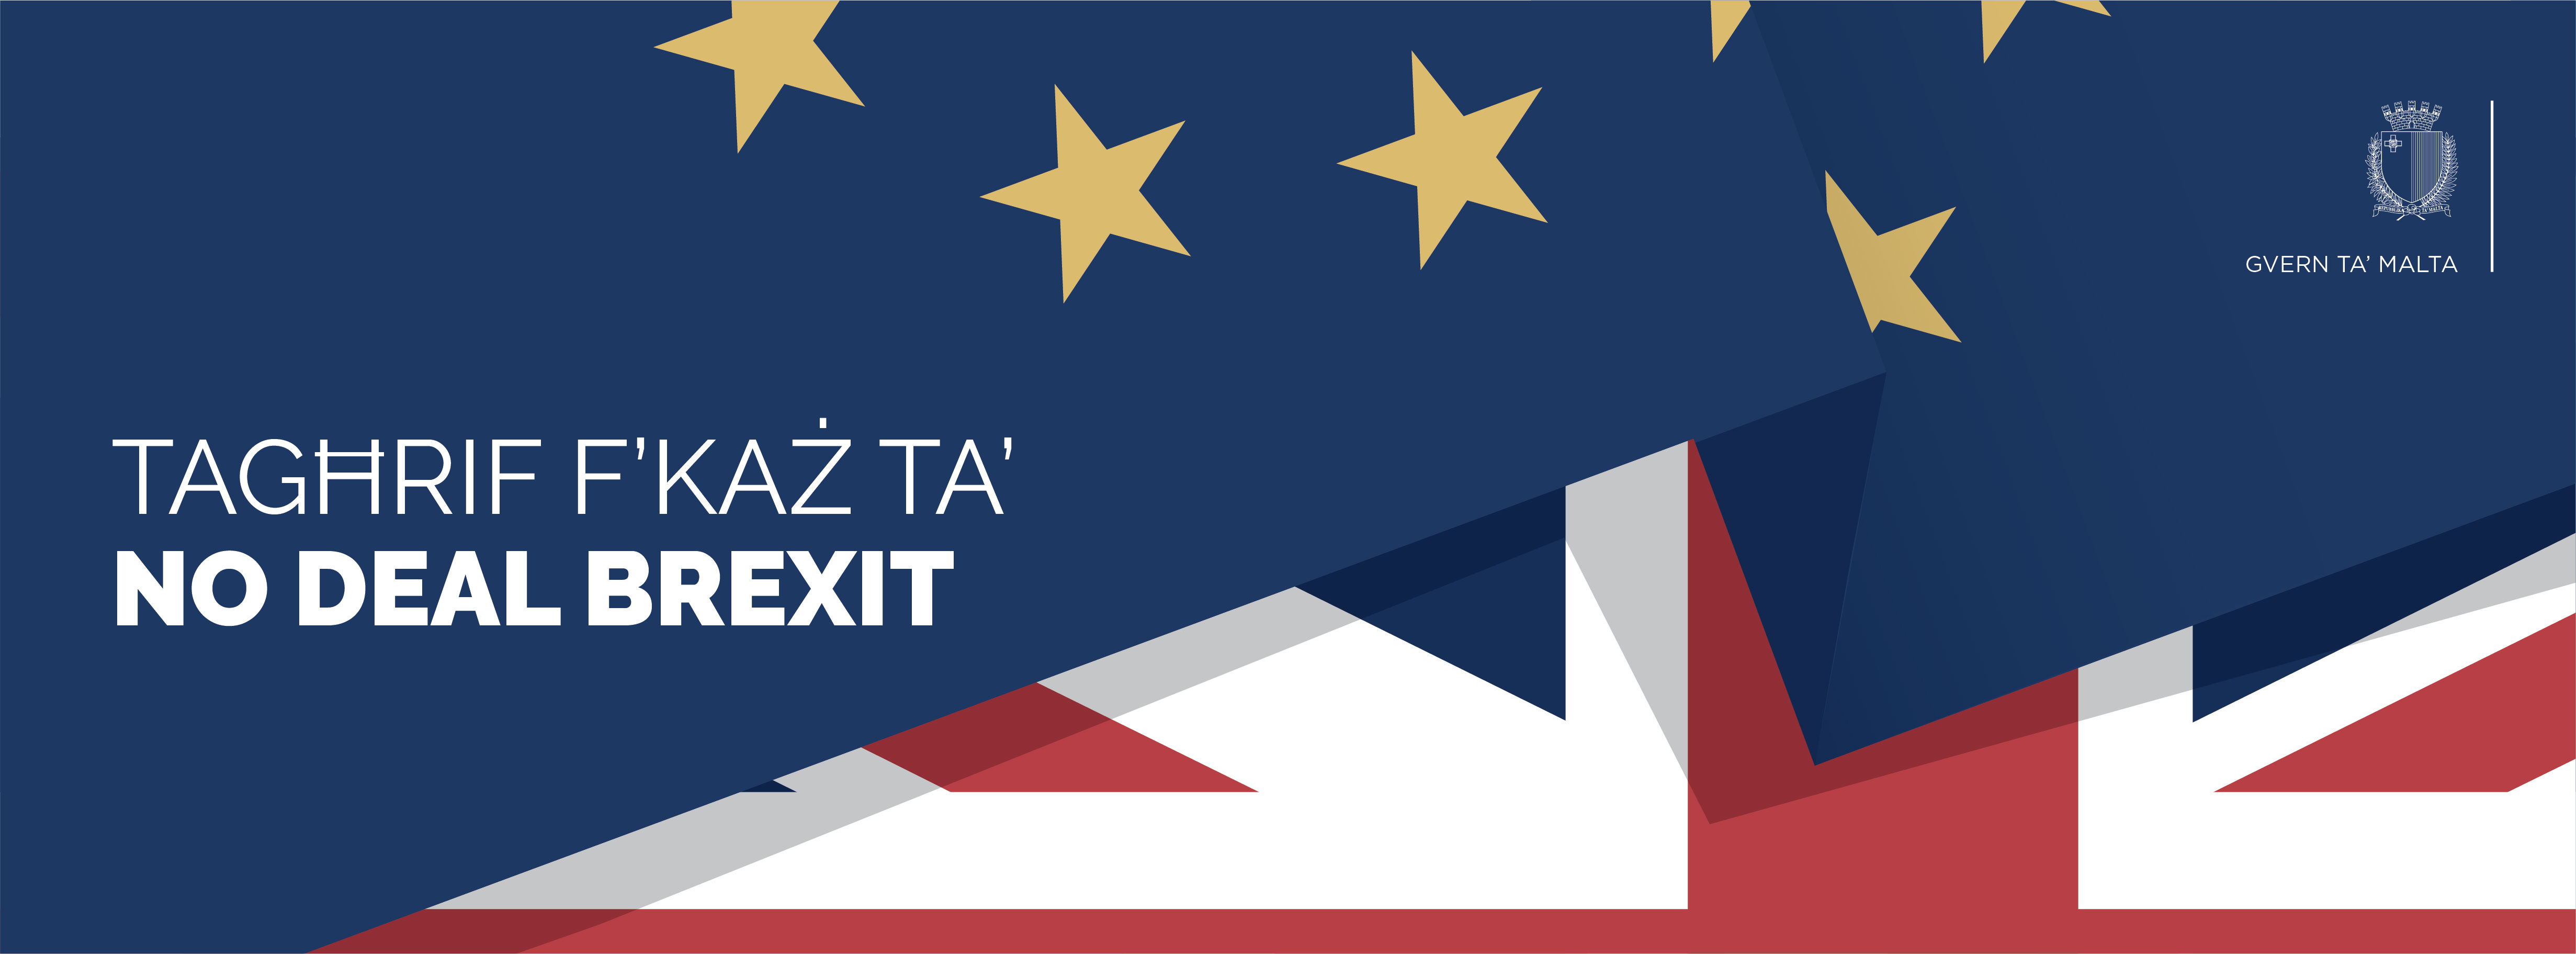 /en/Pages/FACTSHEET-Malta-Government-plans-in-case-of-a-no-deal-Brexit.aspx